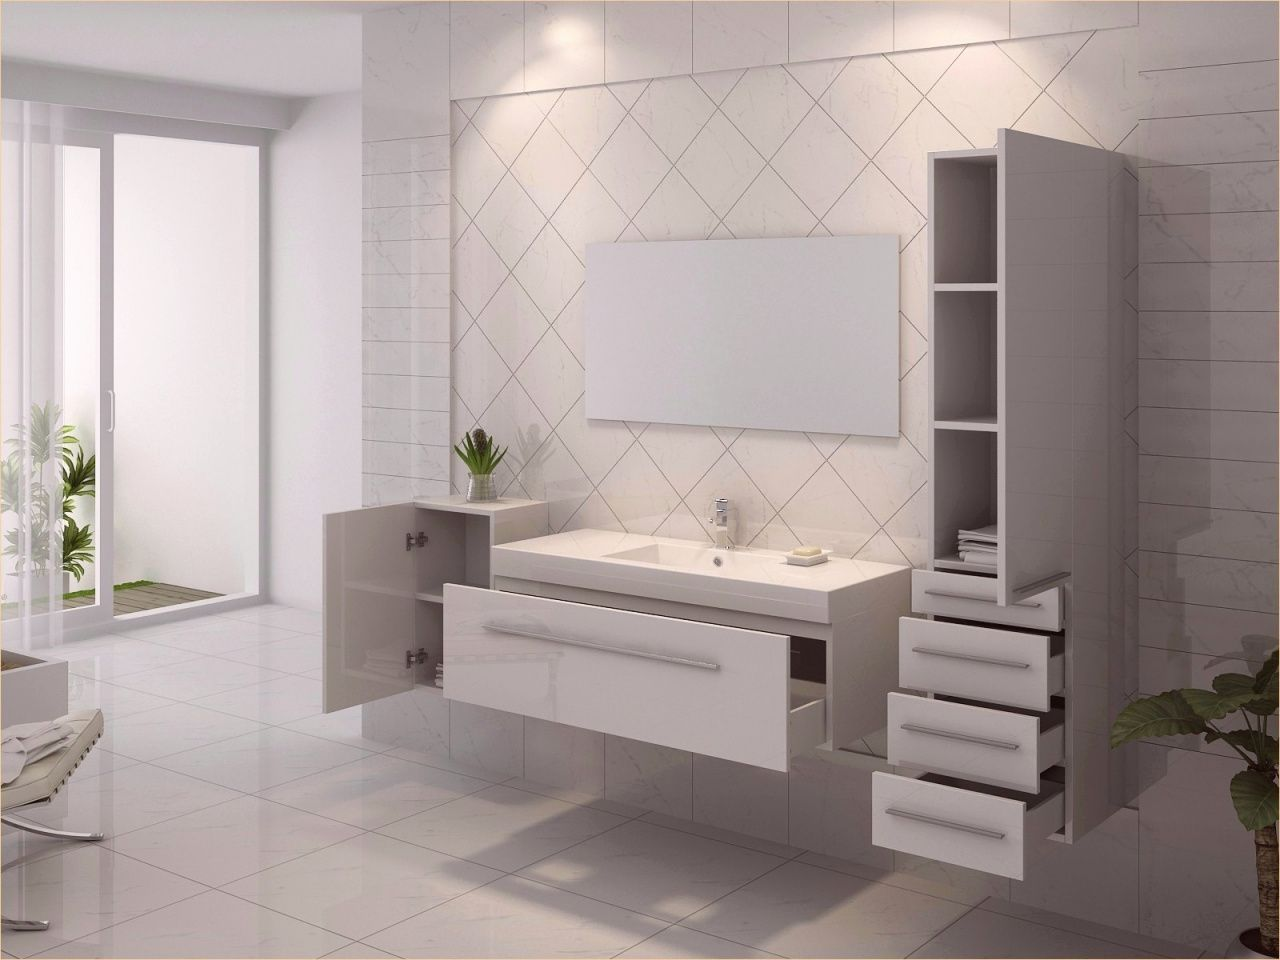 70 Salle De Bain 3d Ikea Contemporary Bathroom Vanity Small Space Bathroom Bathroom Accessories Luxury